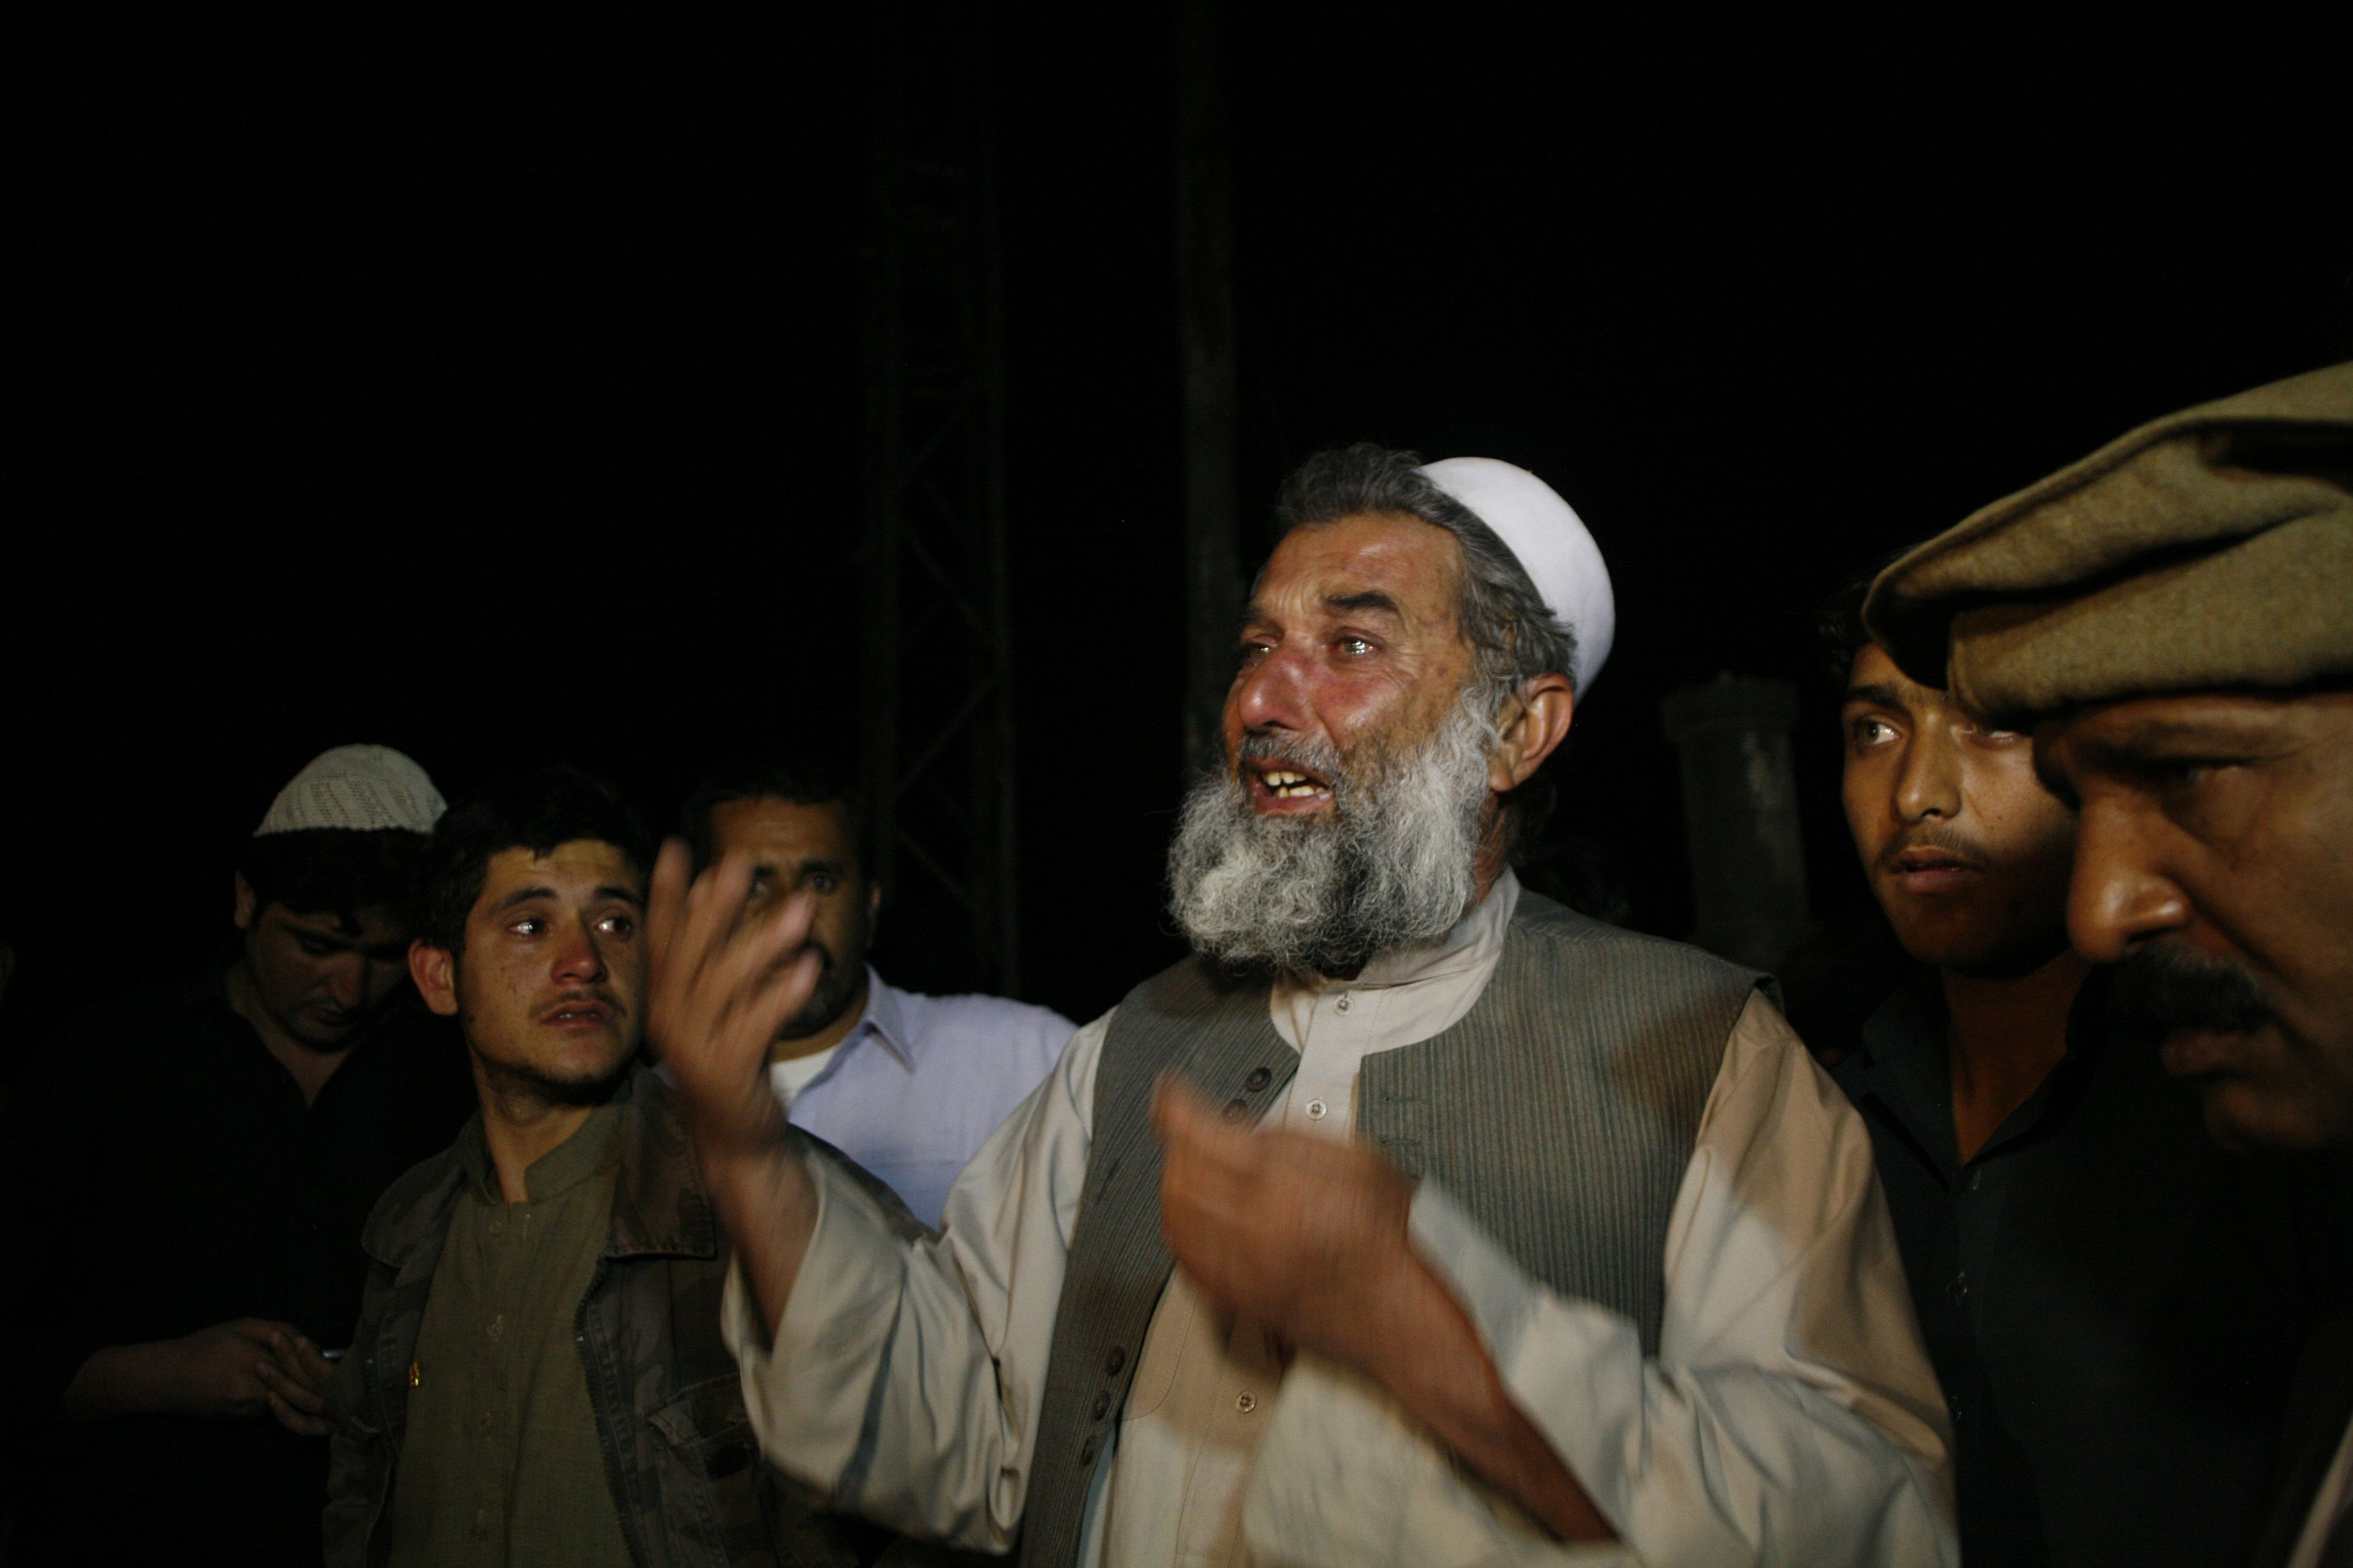 A man reacts at the site of a bomb blast where his children were injured in Quetta April 23, 2013. Pakistan's ethnic Hazara minority suffered a fresh blow on Tuesday when a suicide car bomber killed at least five people and wounded dozens in the attack in Quetta that came close to killing one of the community's top politicians, police said. — Reuters Photo